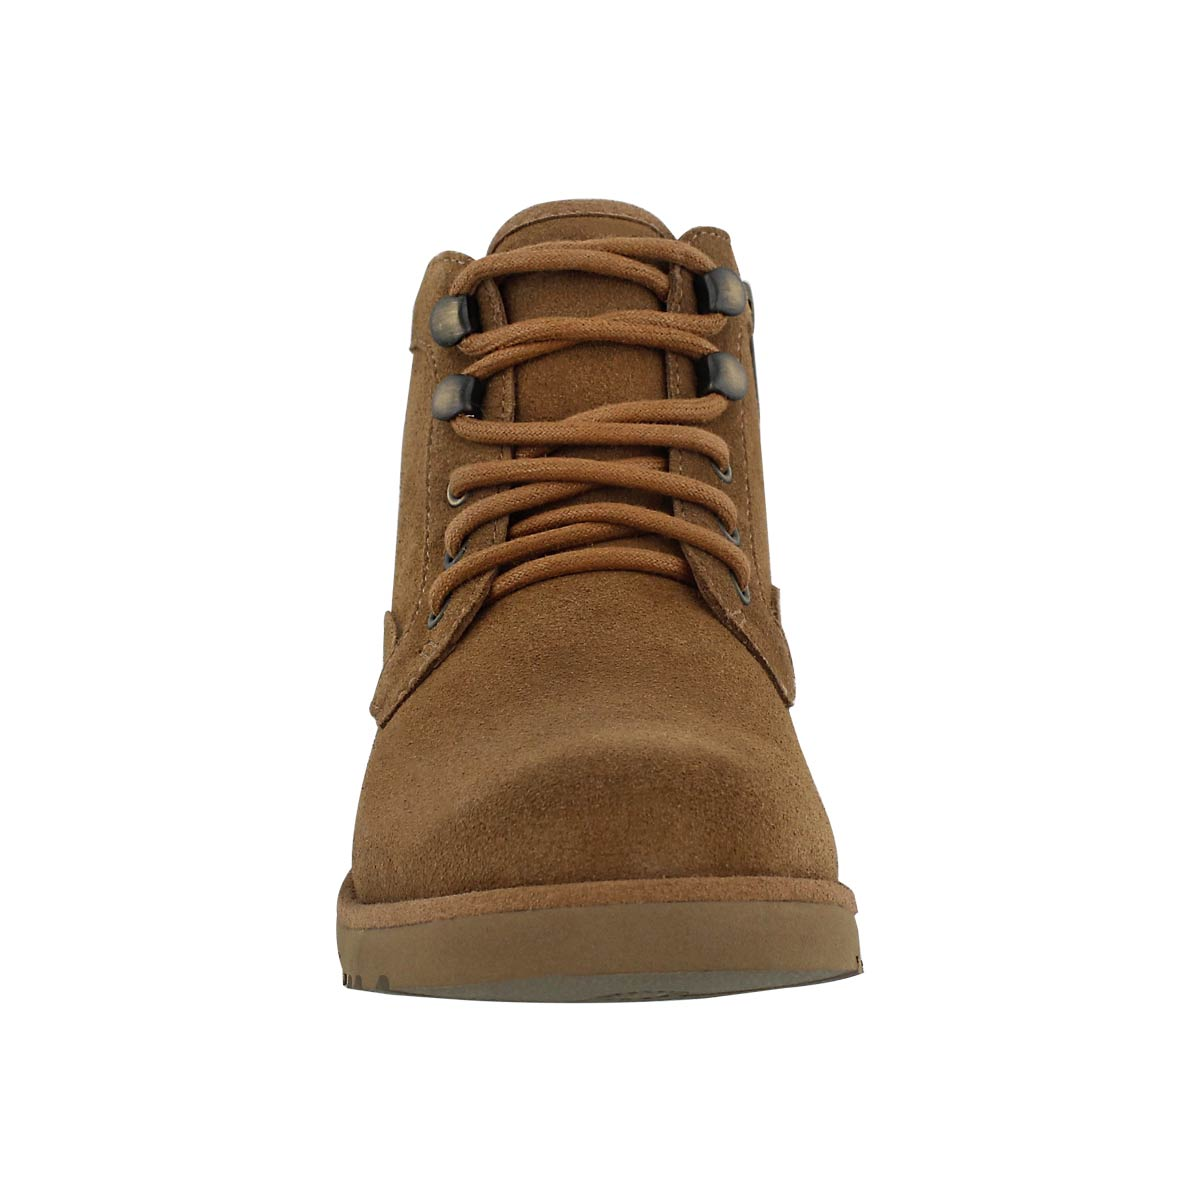 Grls Banan chestnut lace up ankle boot